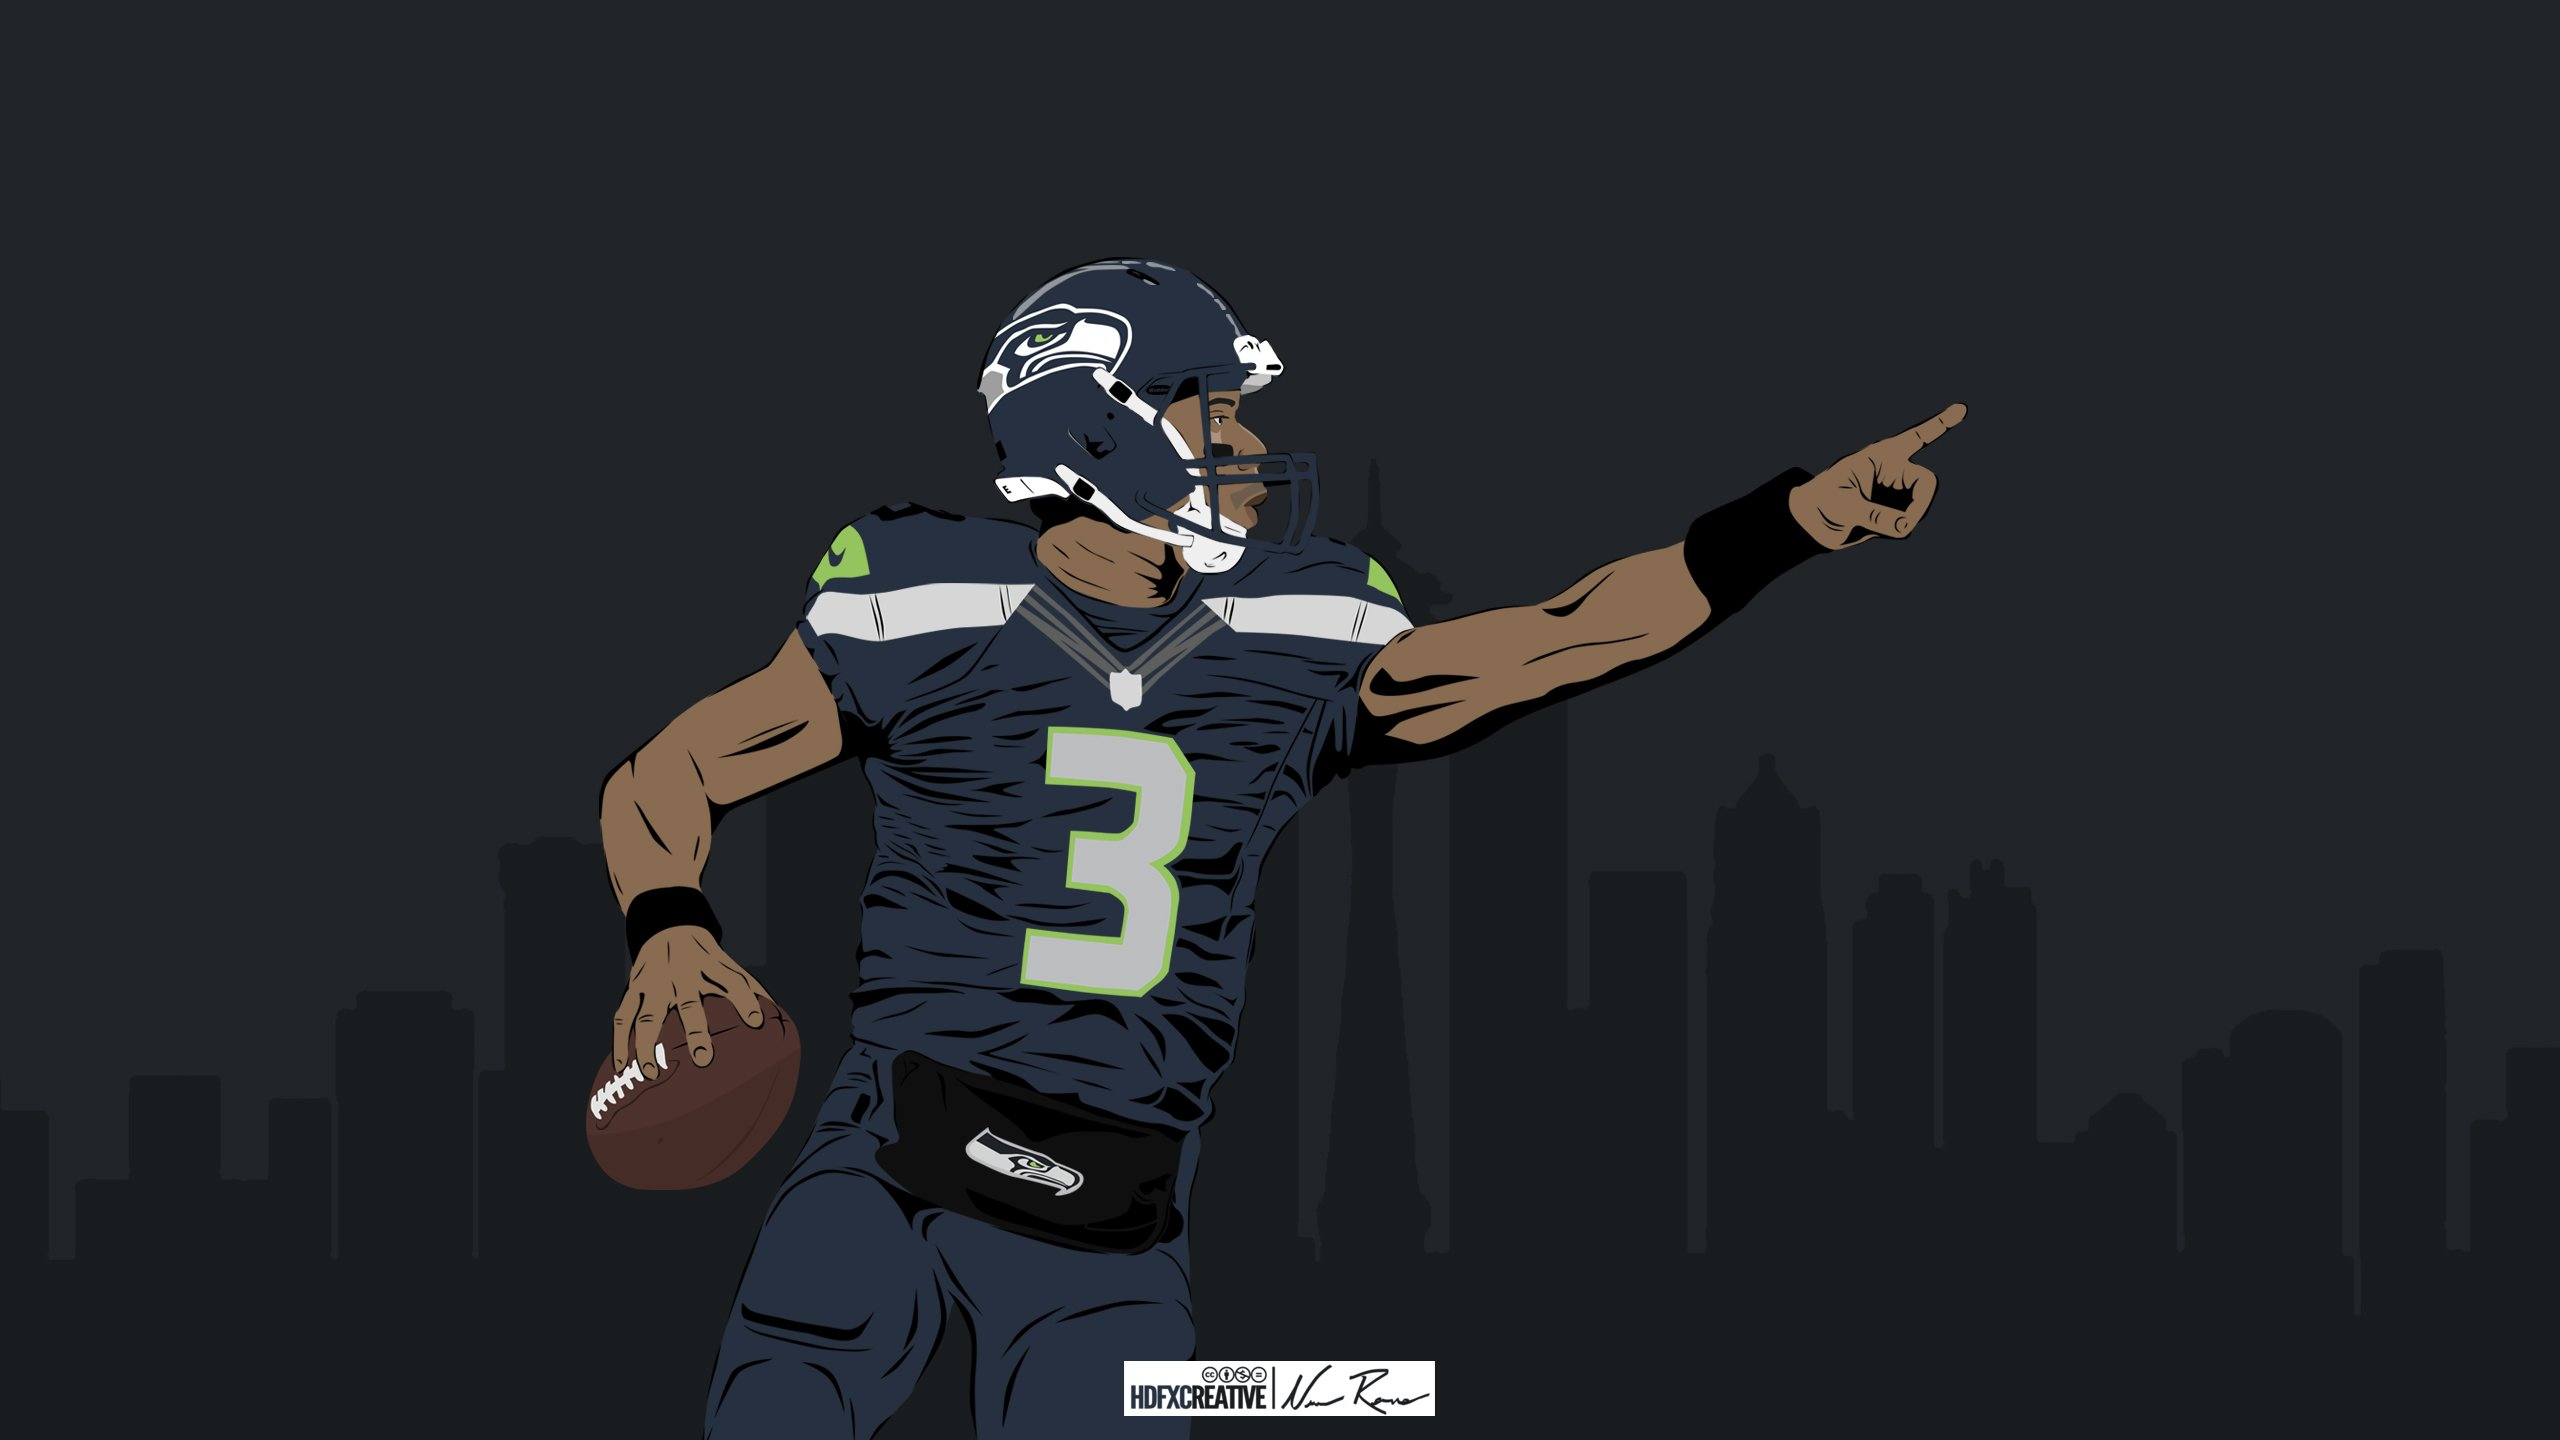 NFL Wallpapers HDFX CREATIVE 2560x1440